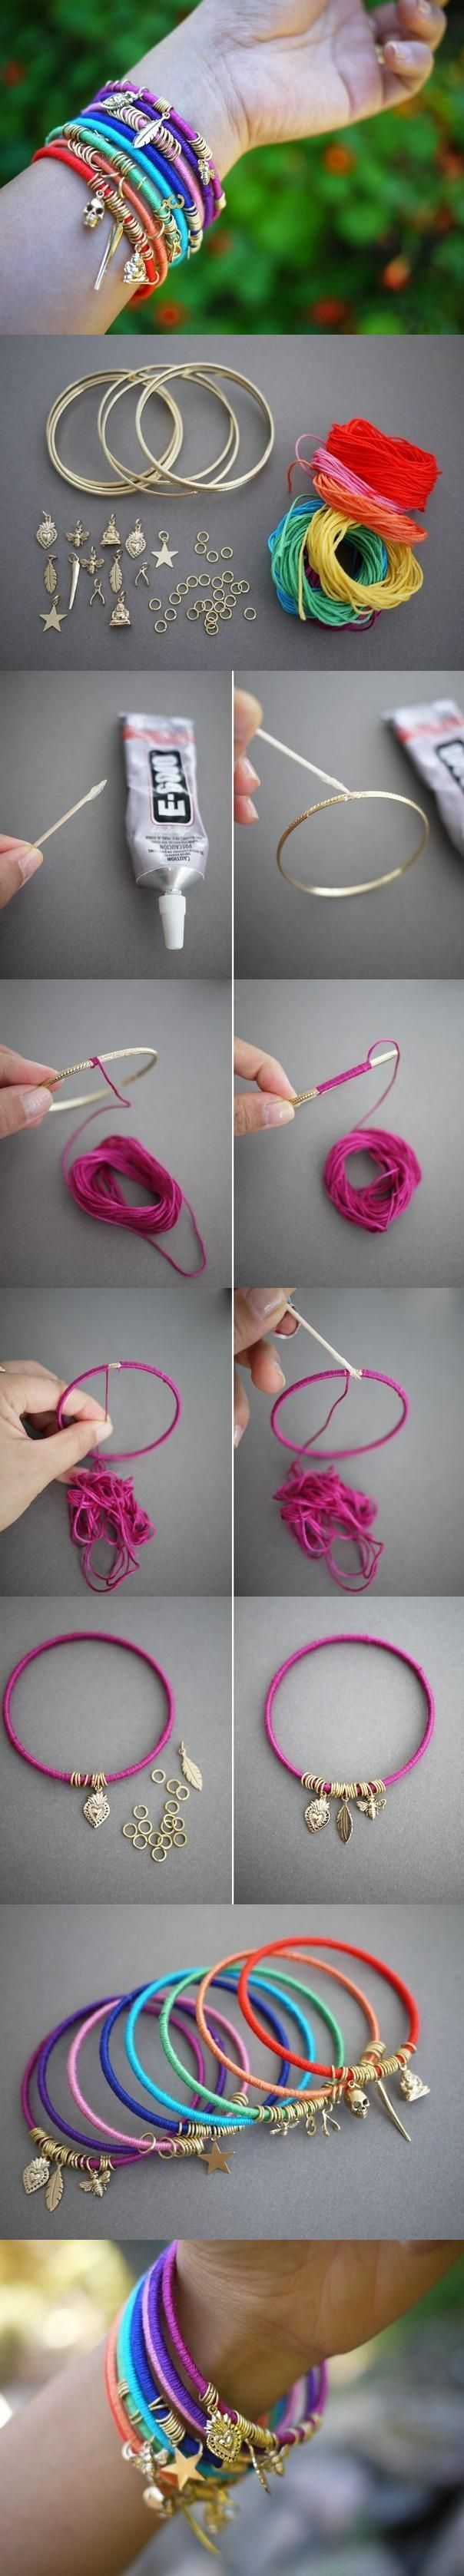 Easy DIY Bracelet : TEEN CRAFT! - A Little Craft In Your DayA Little Craft In Your Day. More DIY here: http://www.sewinlove.com.au/category/fashion/accessories-fashion/